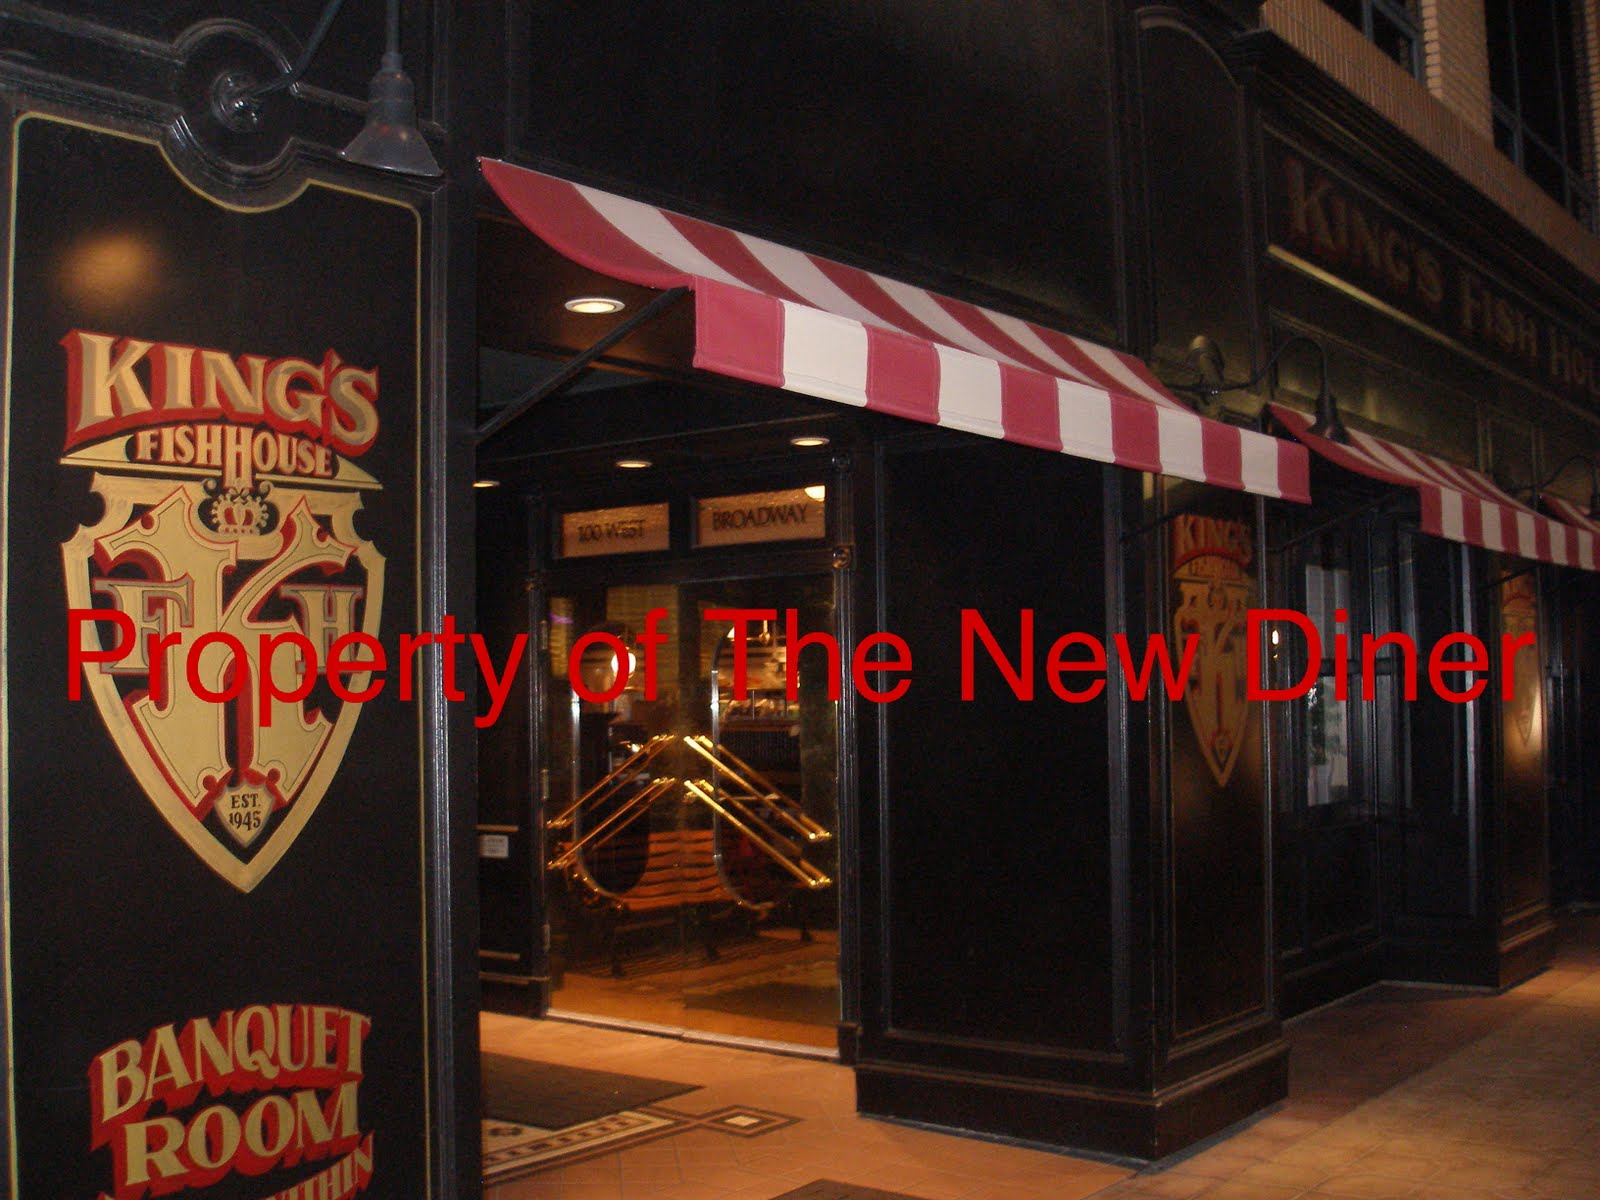 The new diner kings fish house long beach for Kings fish house